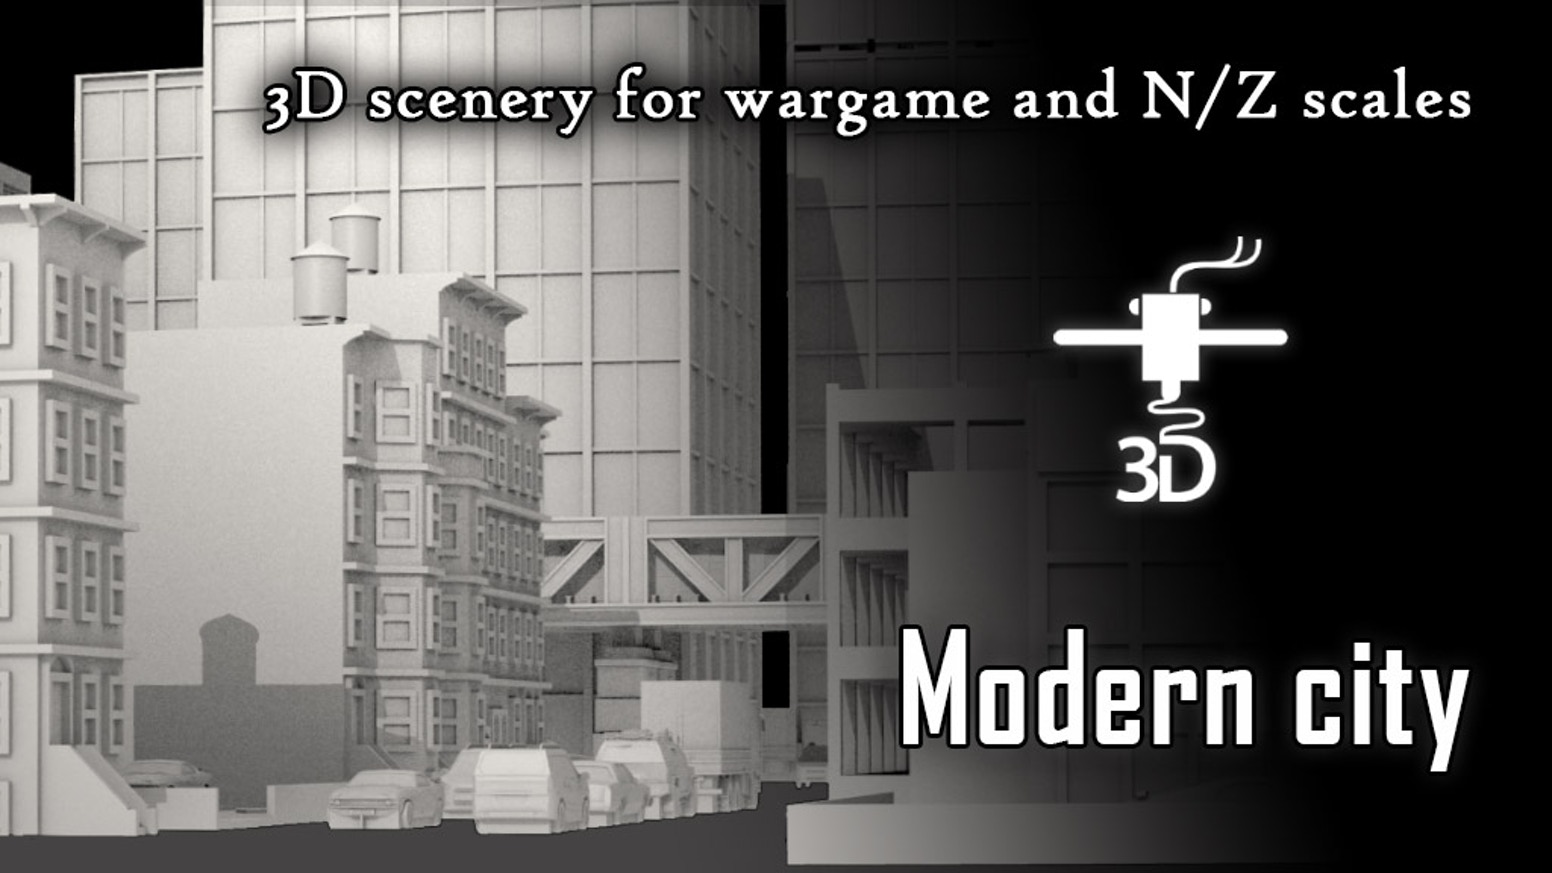 Complet collection of buildings & accessories for small scale wargame and trains model maker (Z & N Scales)